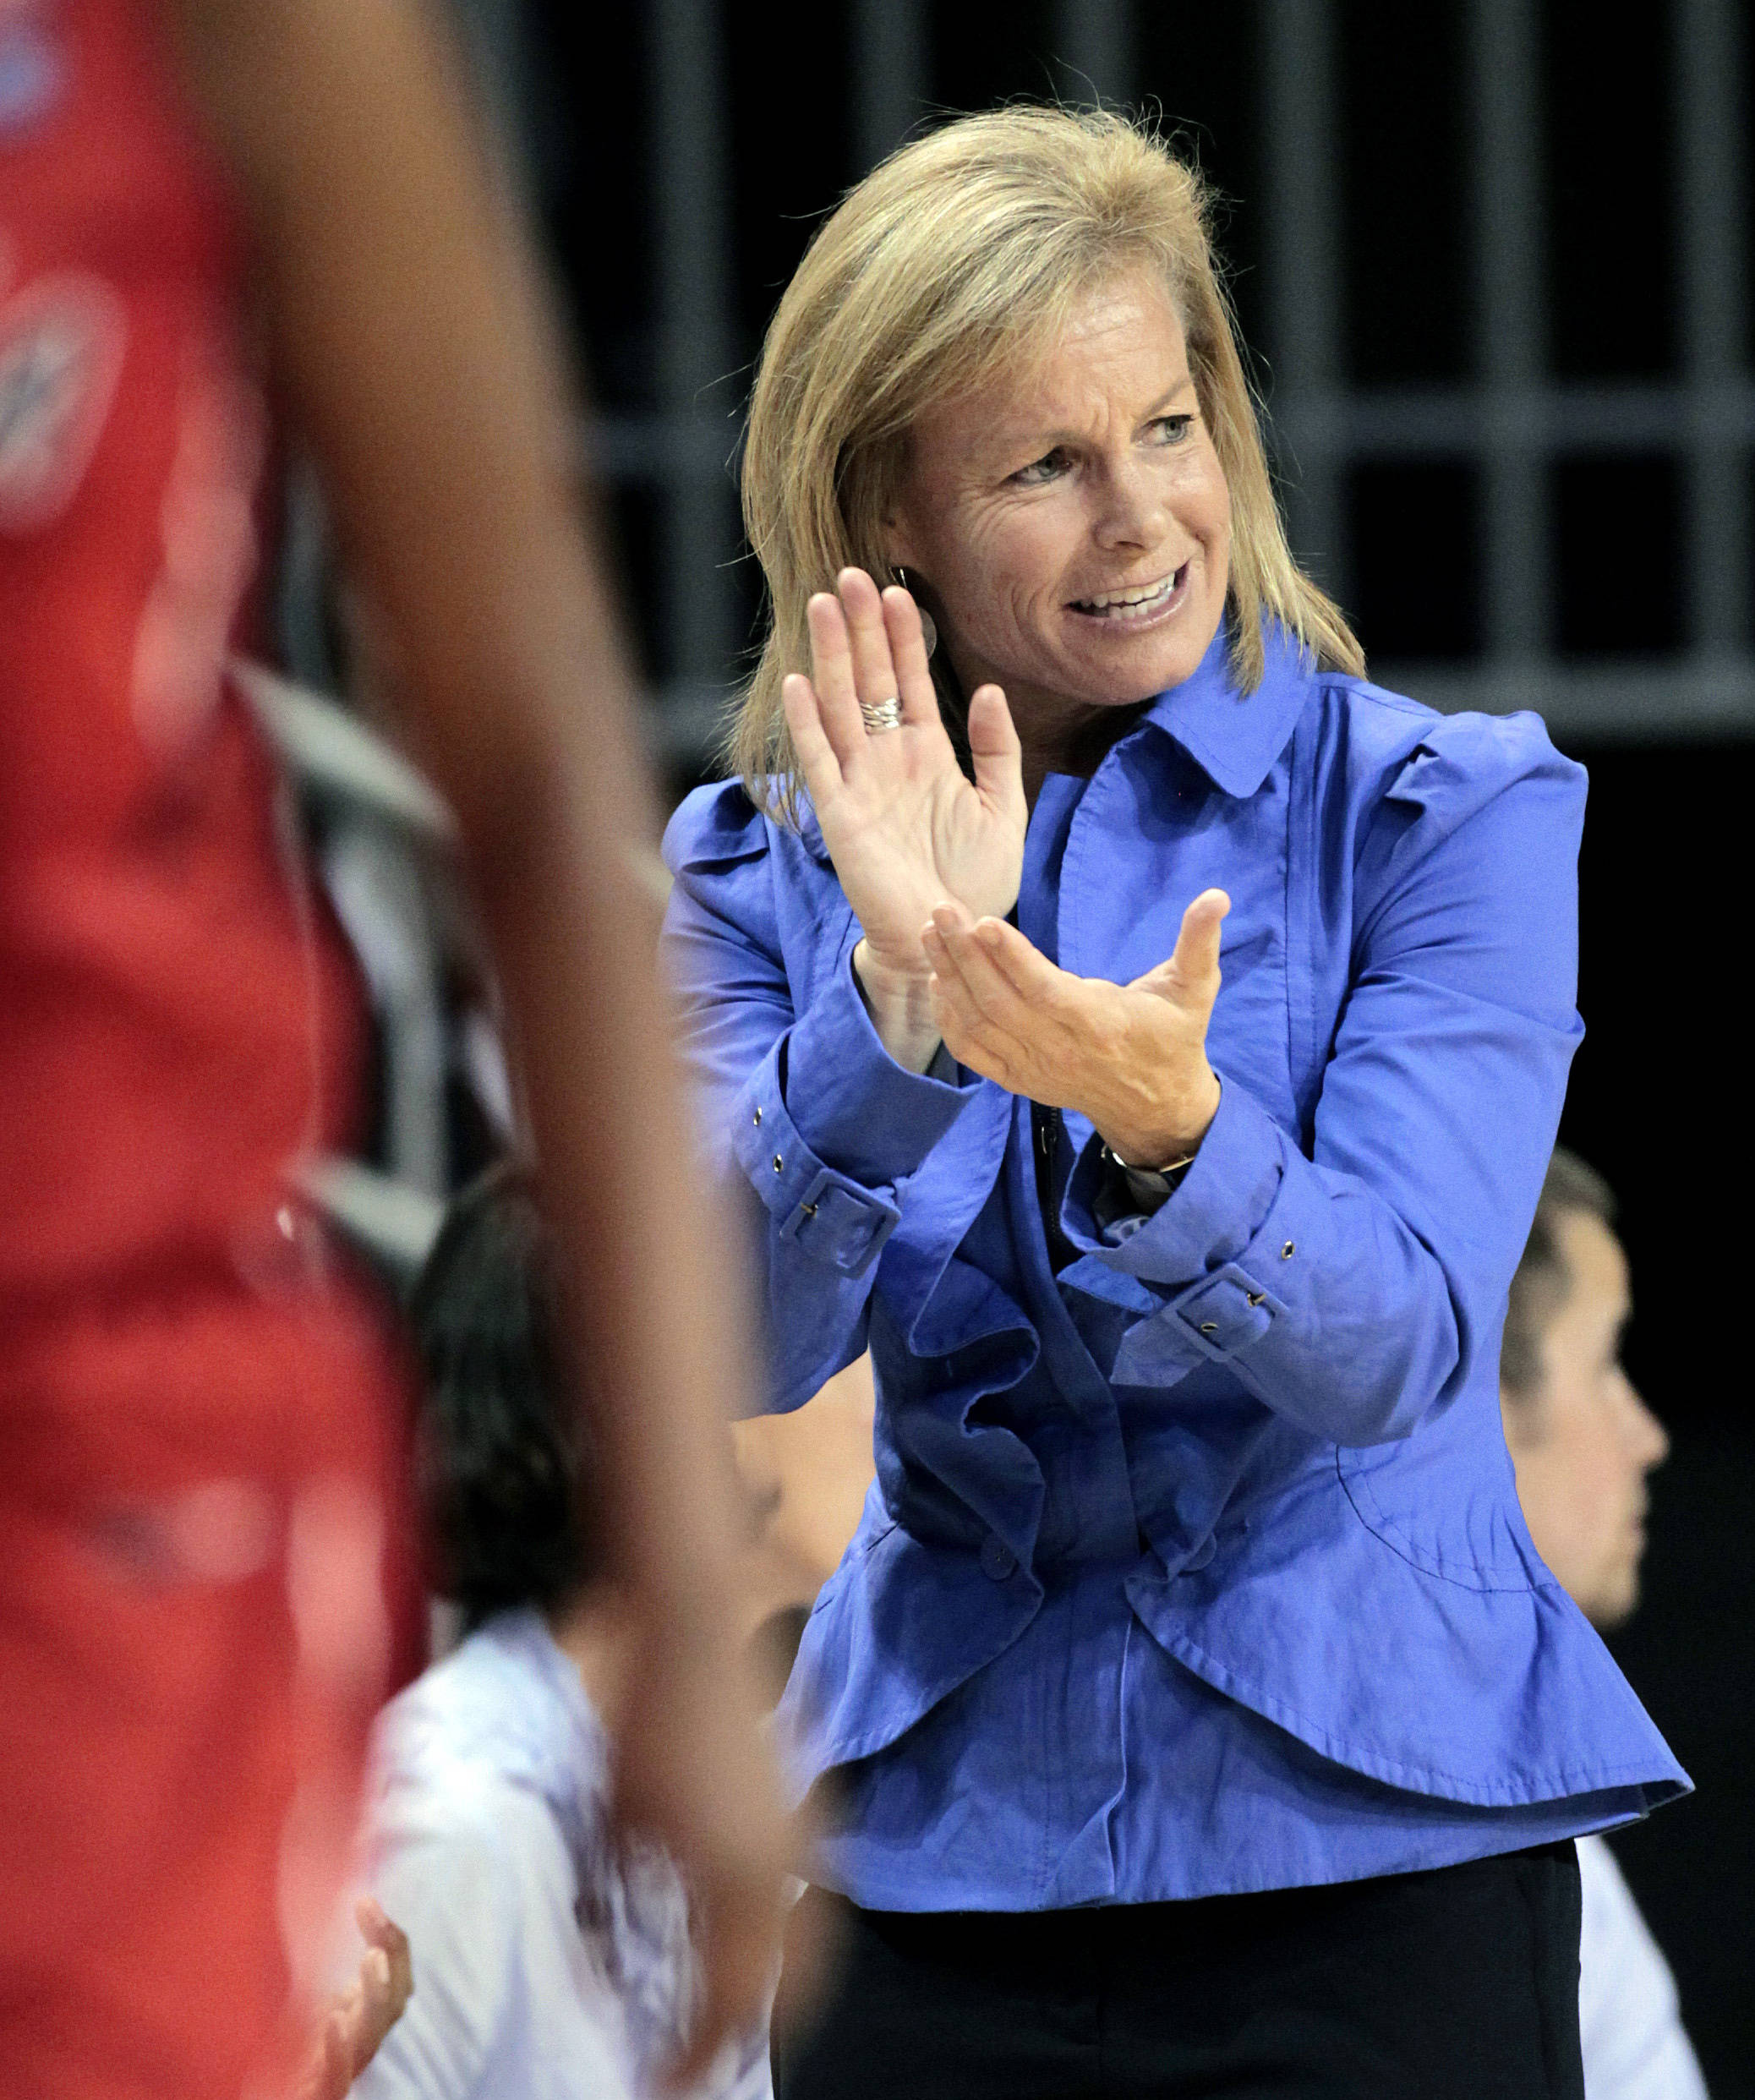 Florida State coach Sue Semrau cheers in the first half of a second-round NCAA women's college basketball tournament game against Georgia at Auburn Arena in Auburn, Ala., Tuesday, March 22, 2011. (AP Photo/Dave Martin)